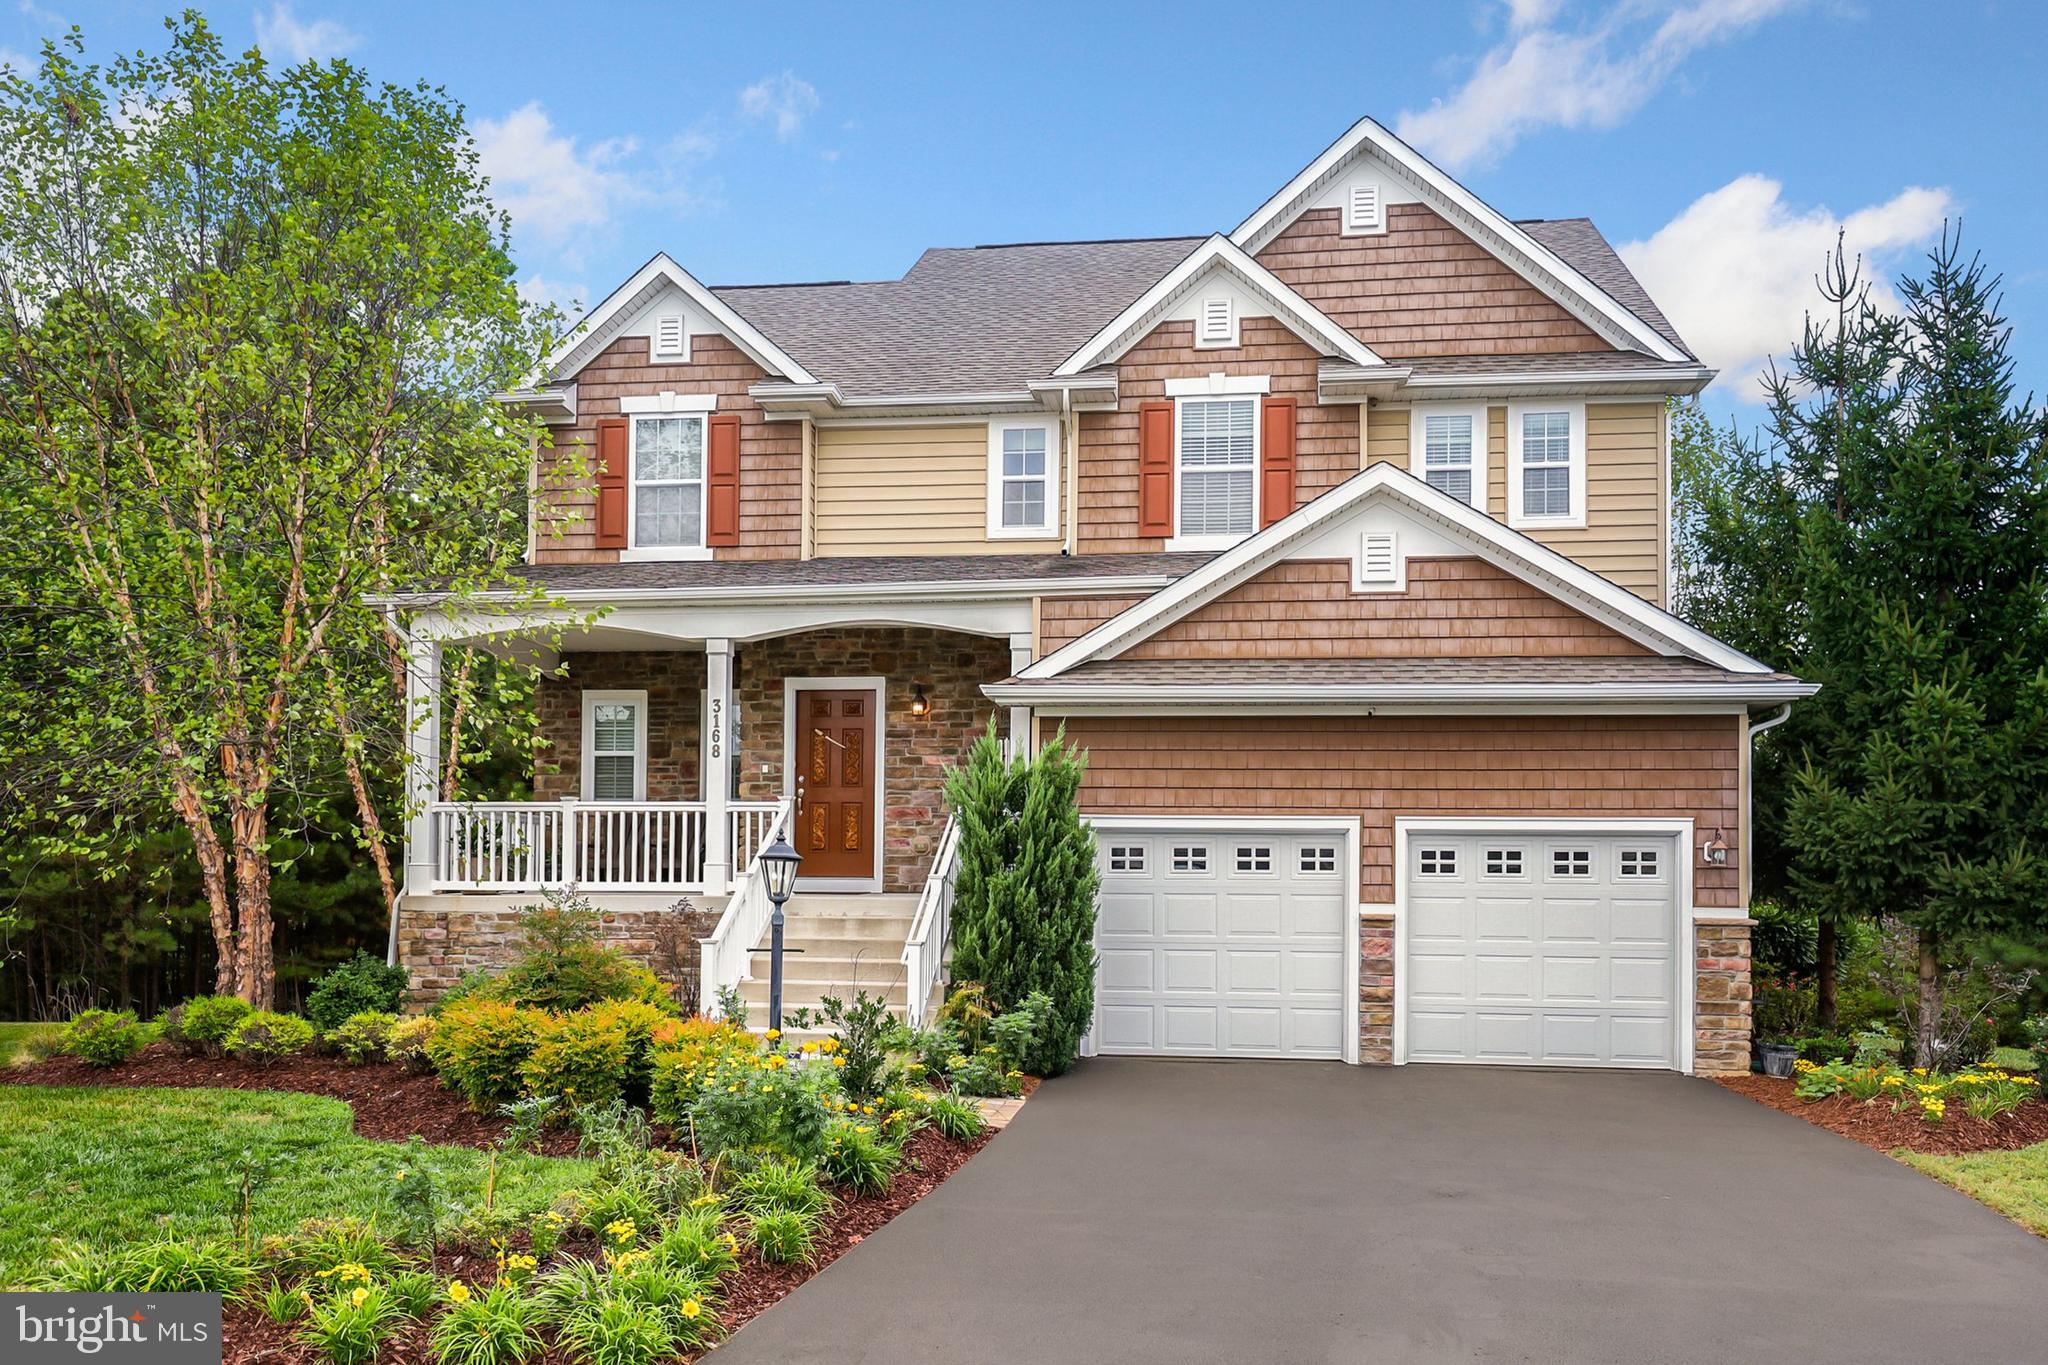 3168 ALSFELD WAY, WALDORF, MD 20603